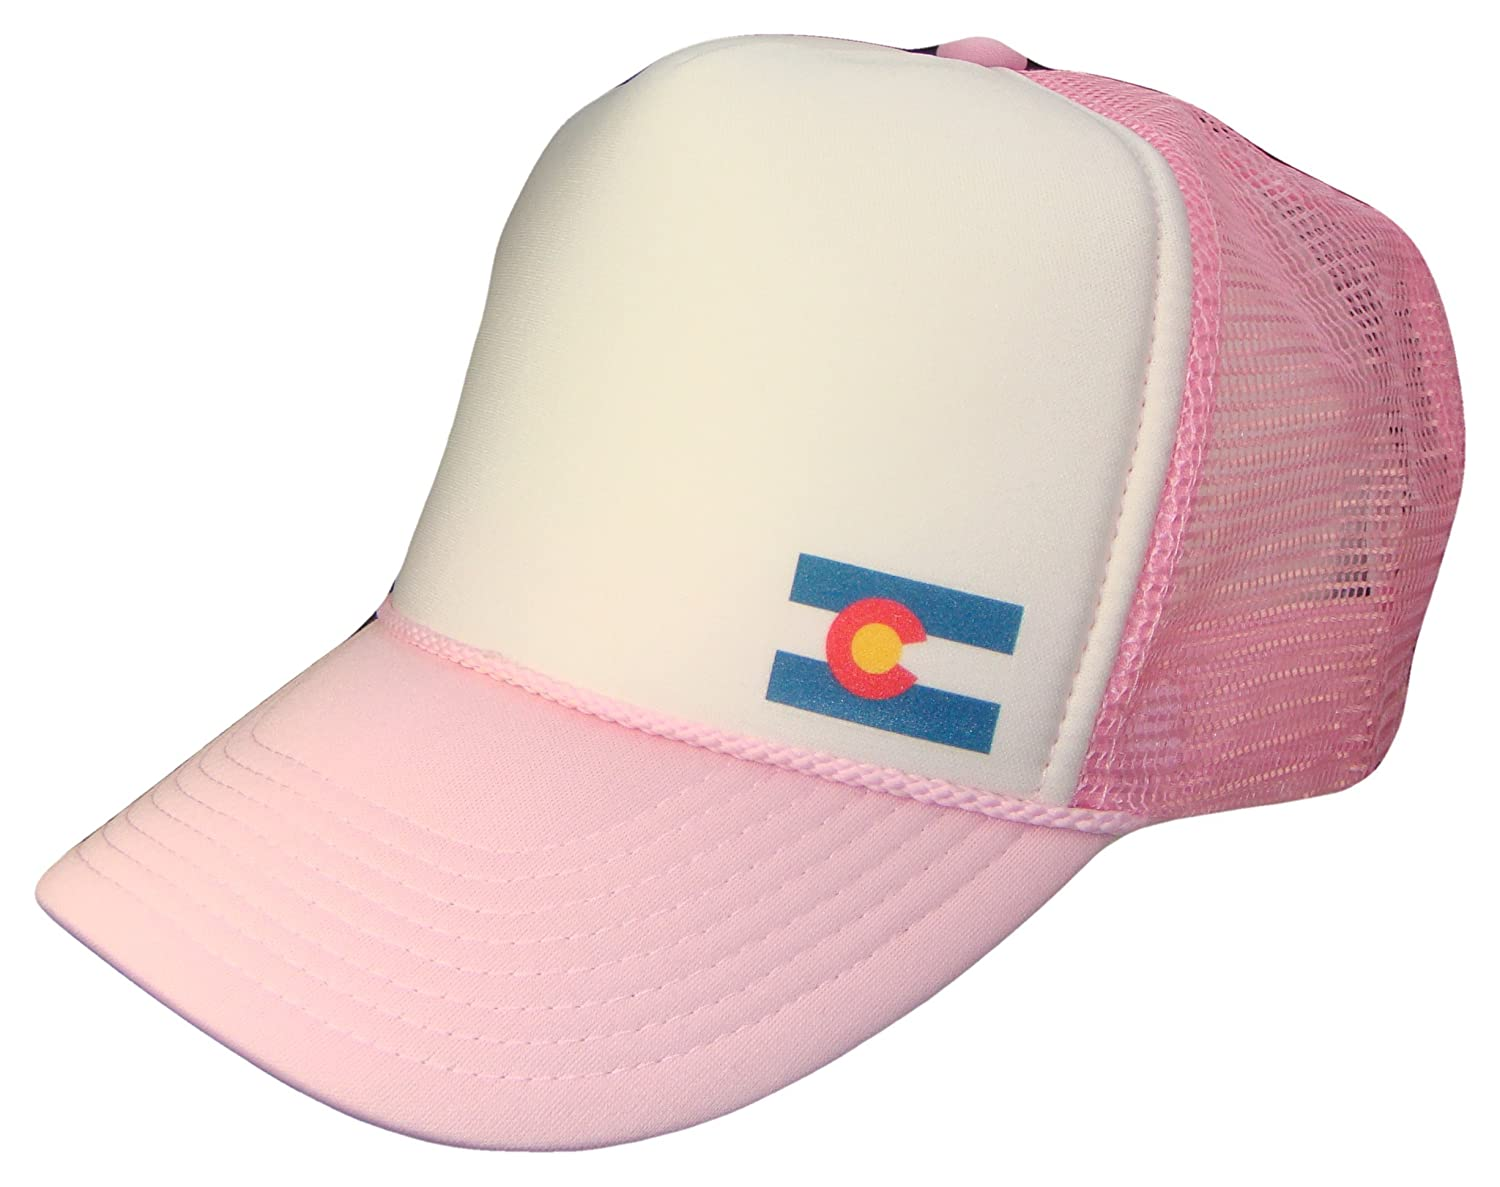 Colorado State Flag Mesh Trucker Cap (One Size, Pink/White)